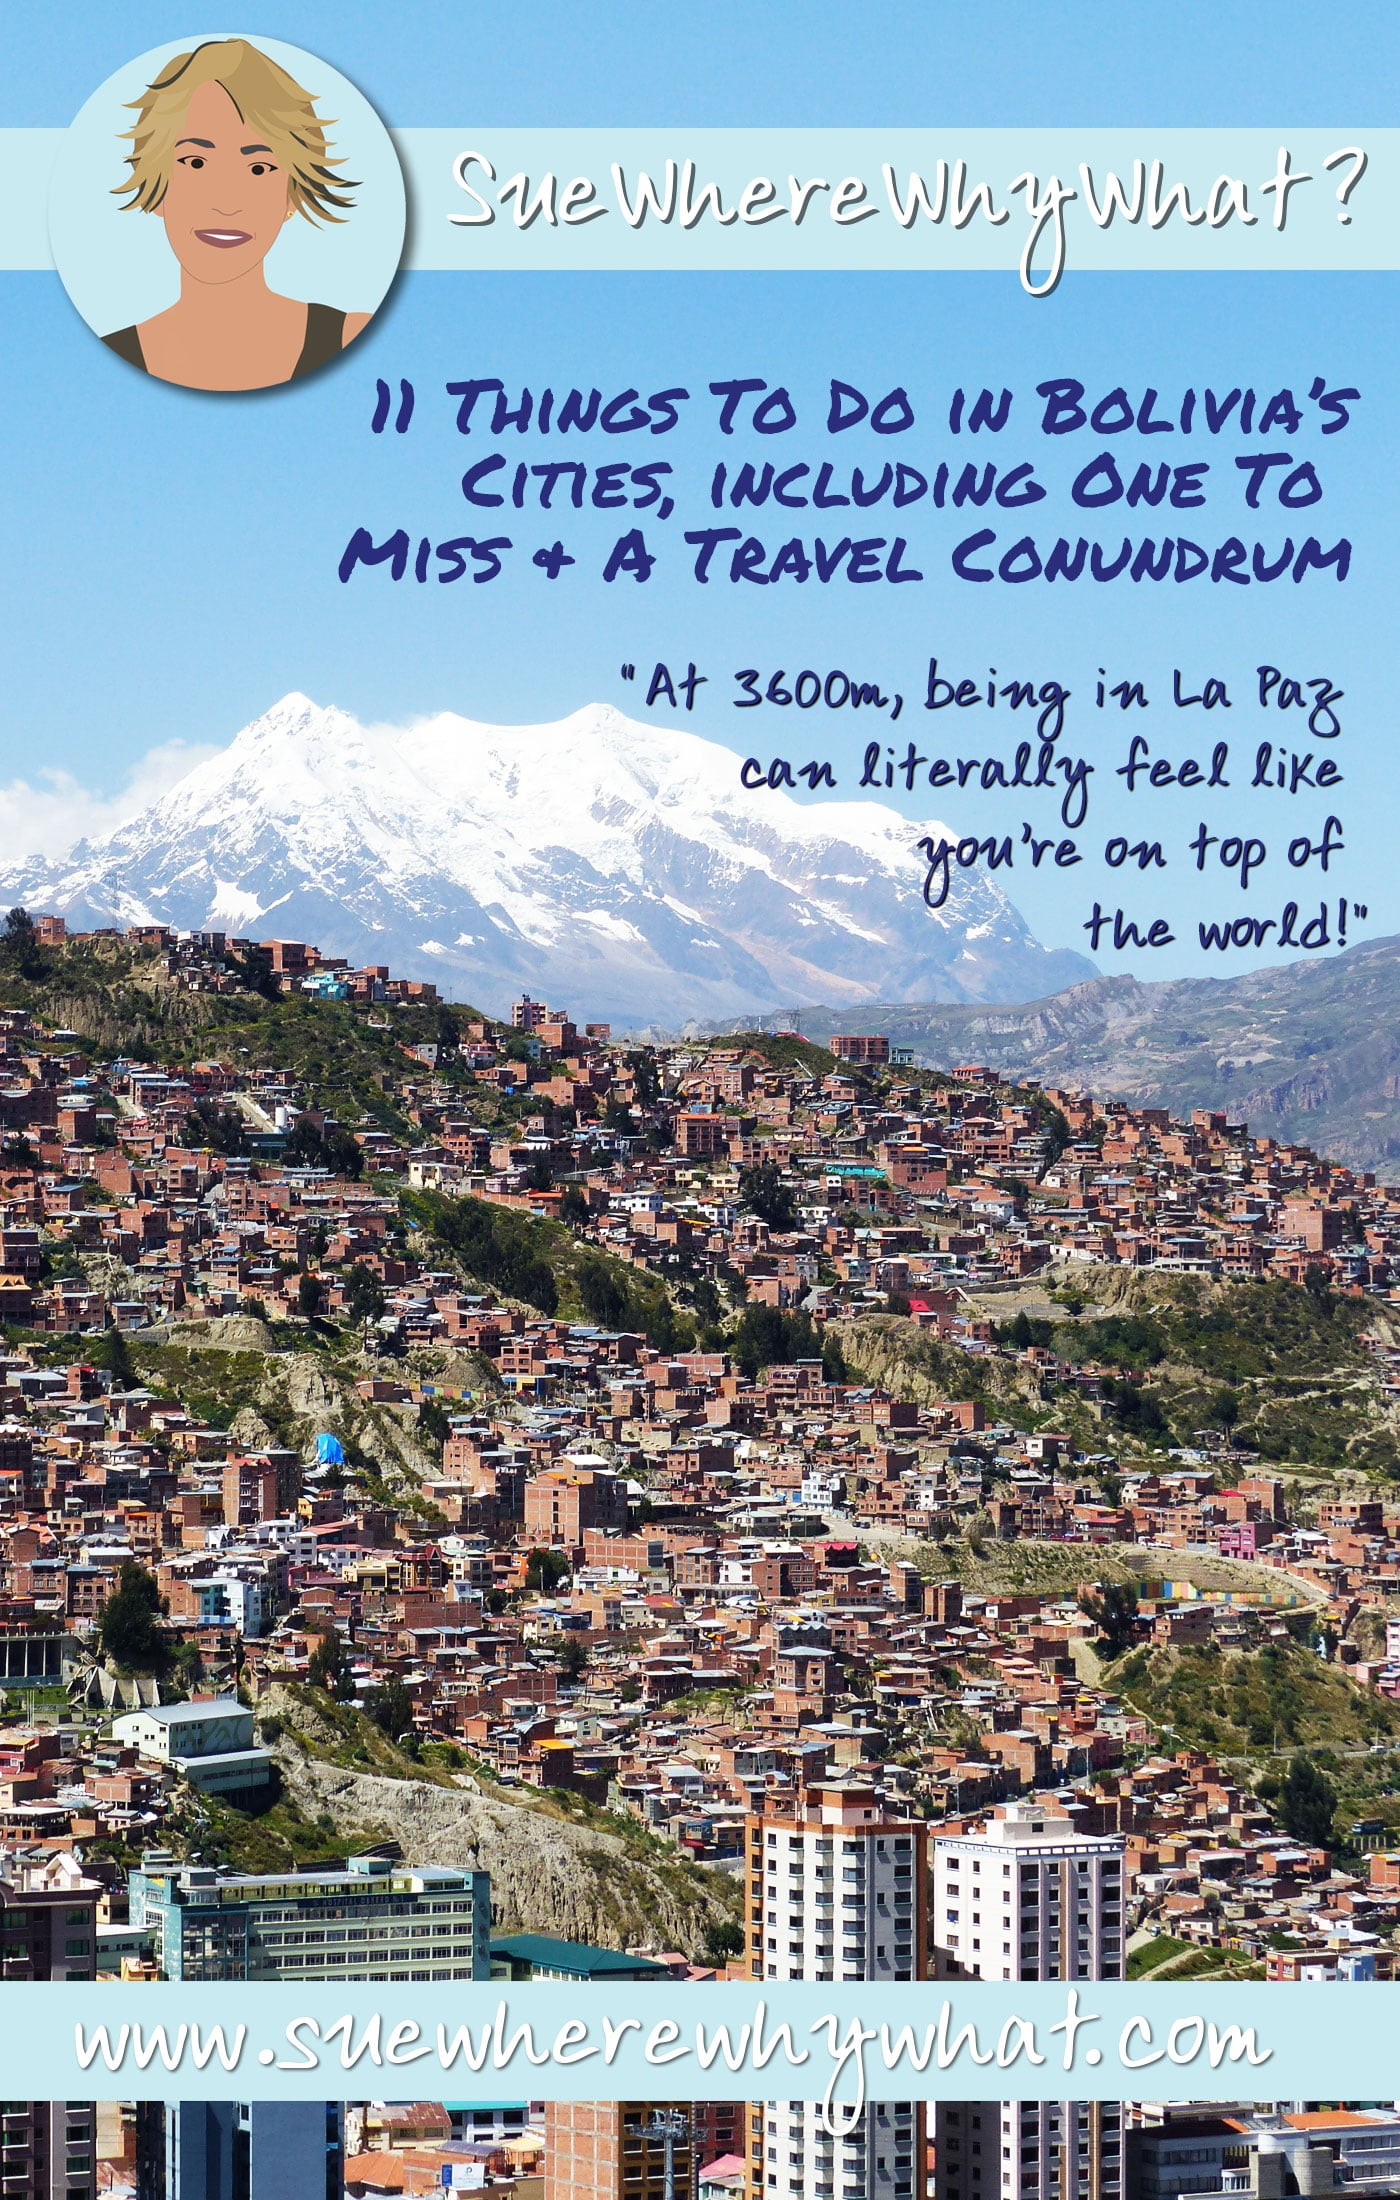 Top 11 Things To Do in Bolivia's Cities, including One To Miss & A Travel Conundrum!